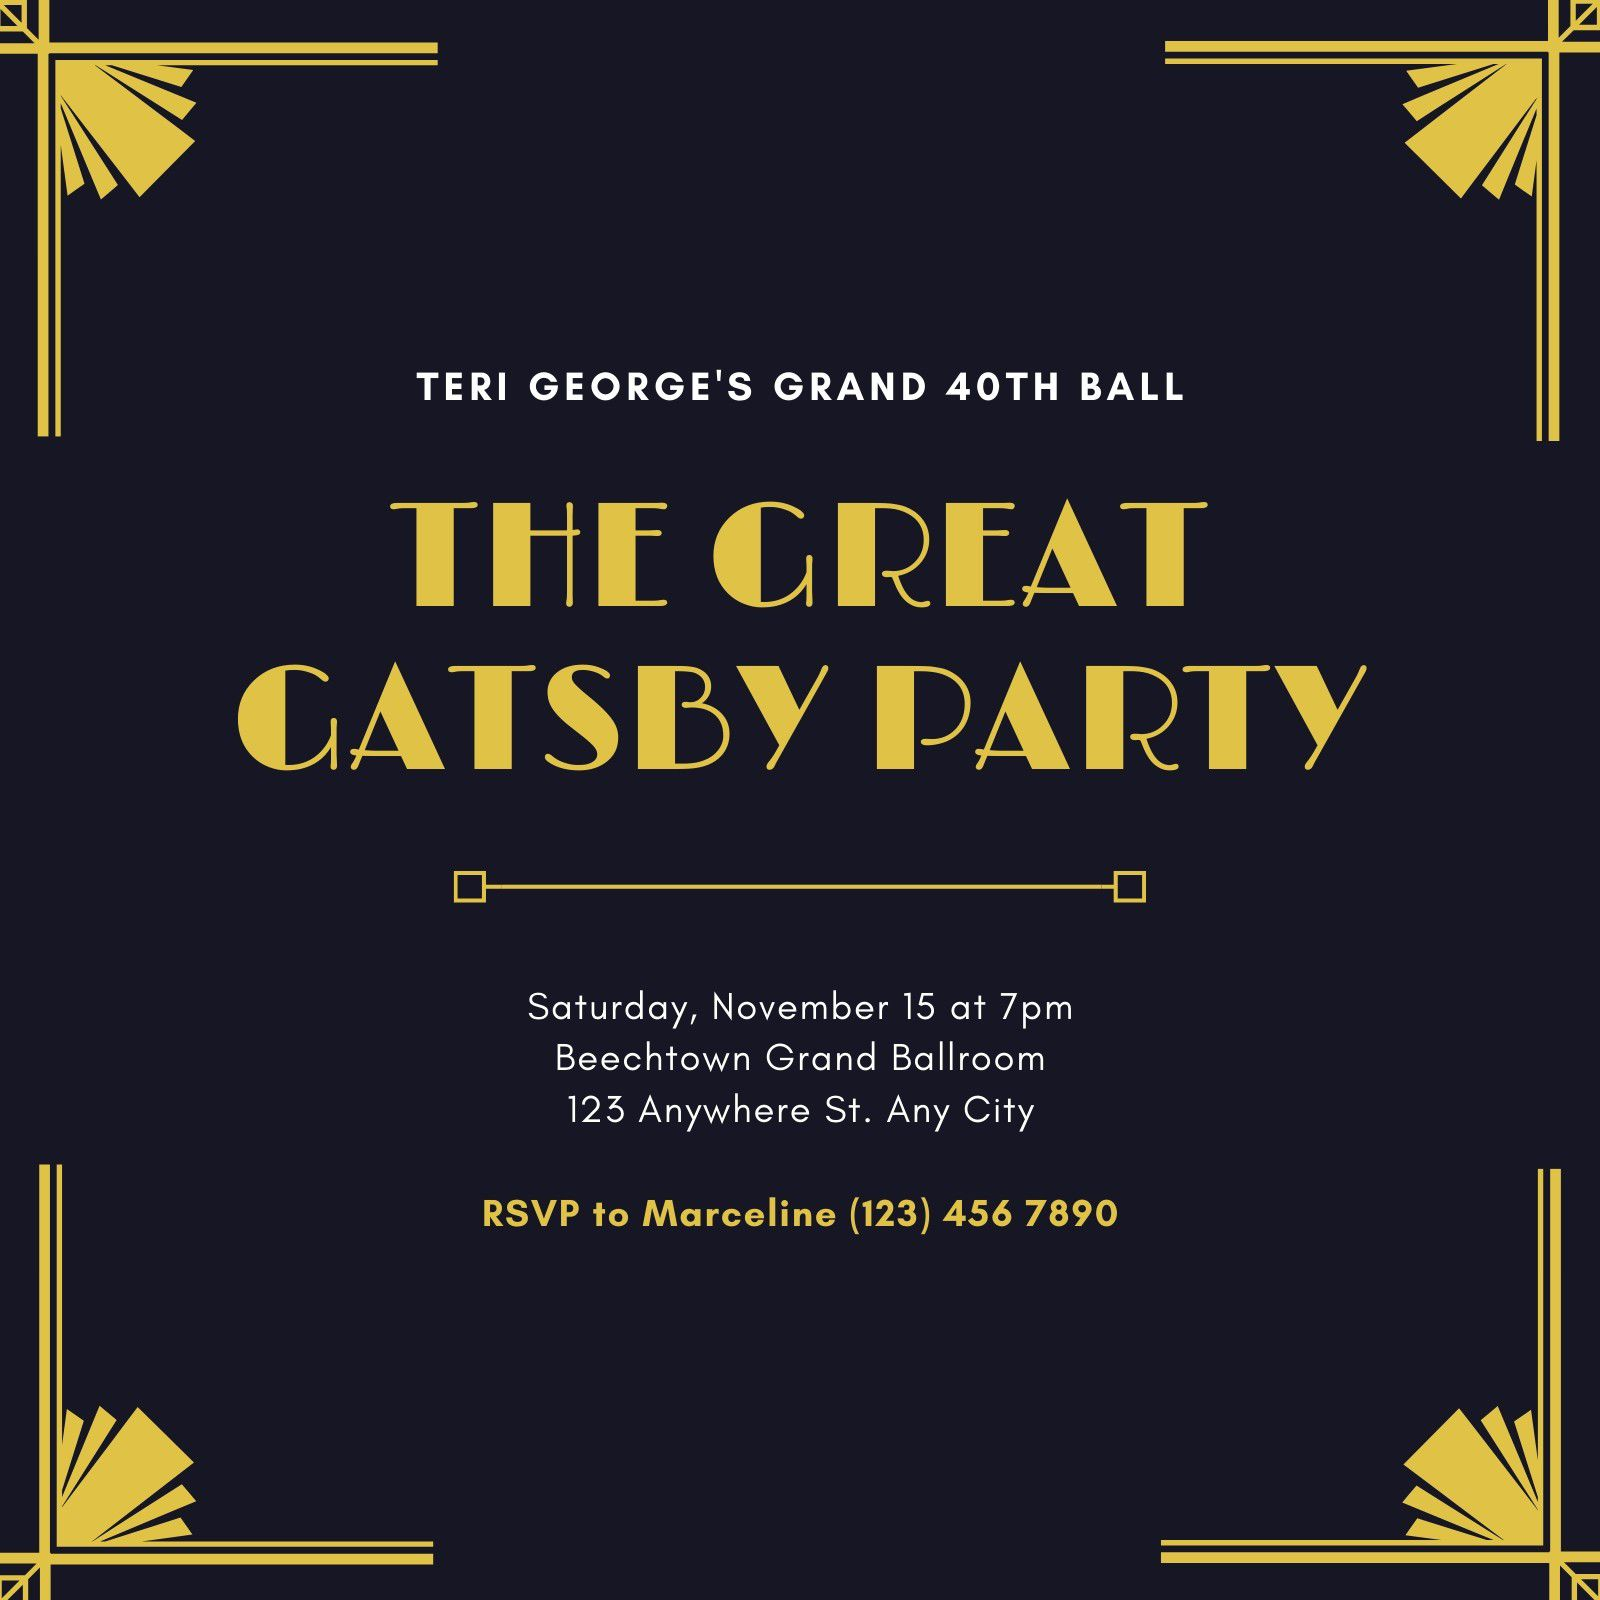 006 Awful Great Gatsby Invitation Template High Resolution  Templates Free Download BlankFull